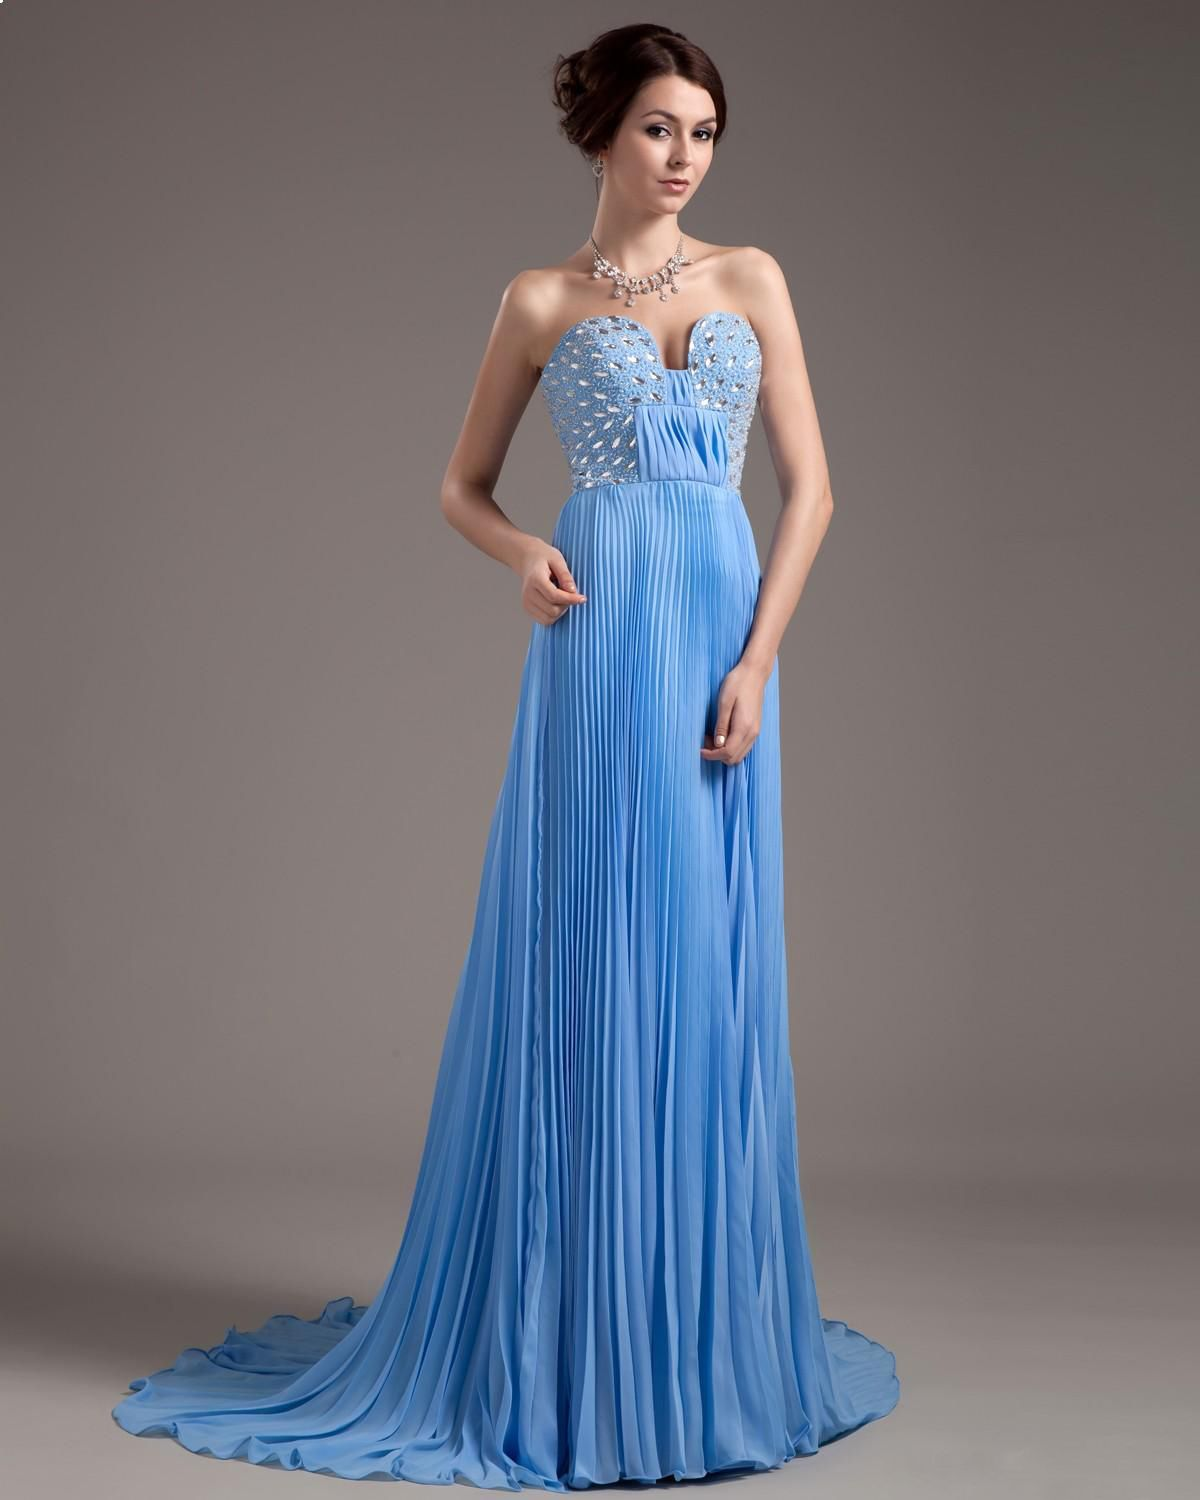 Special Occasion Chiffon Sweetheart Womens Celebrity Dress